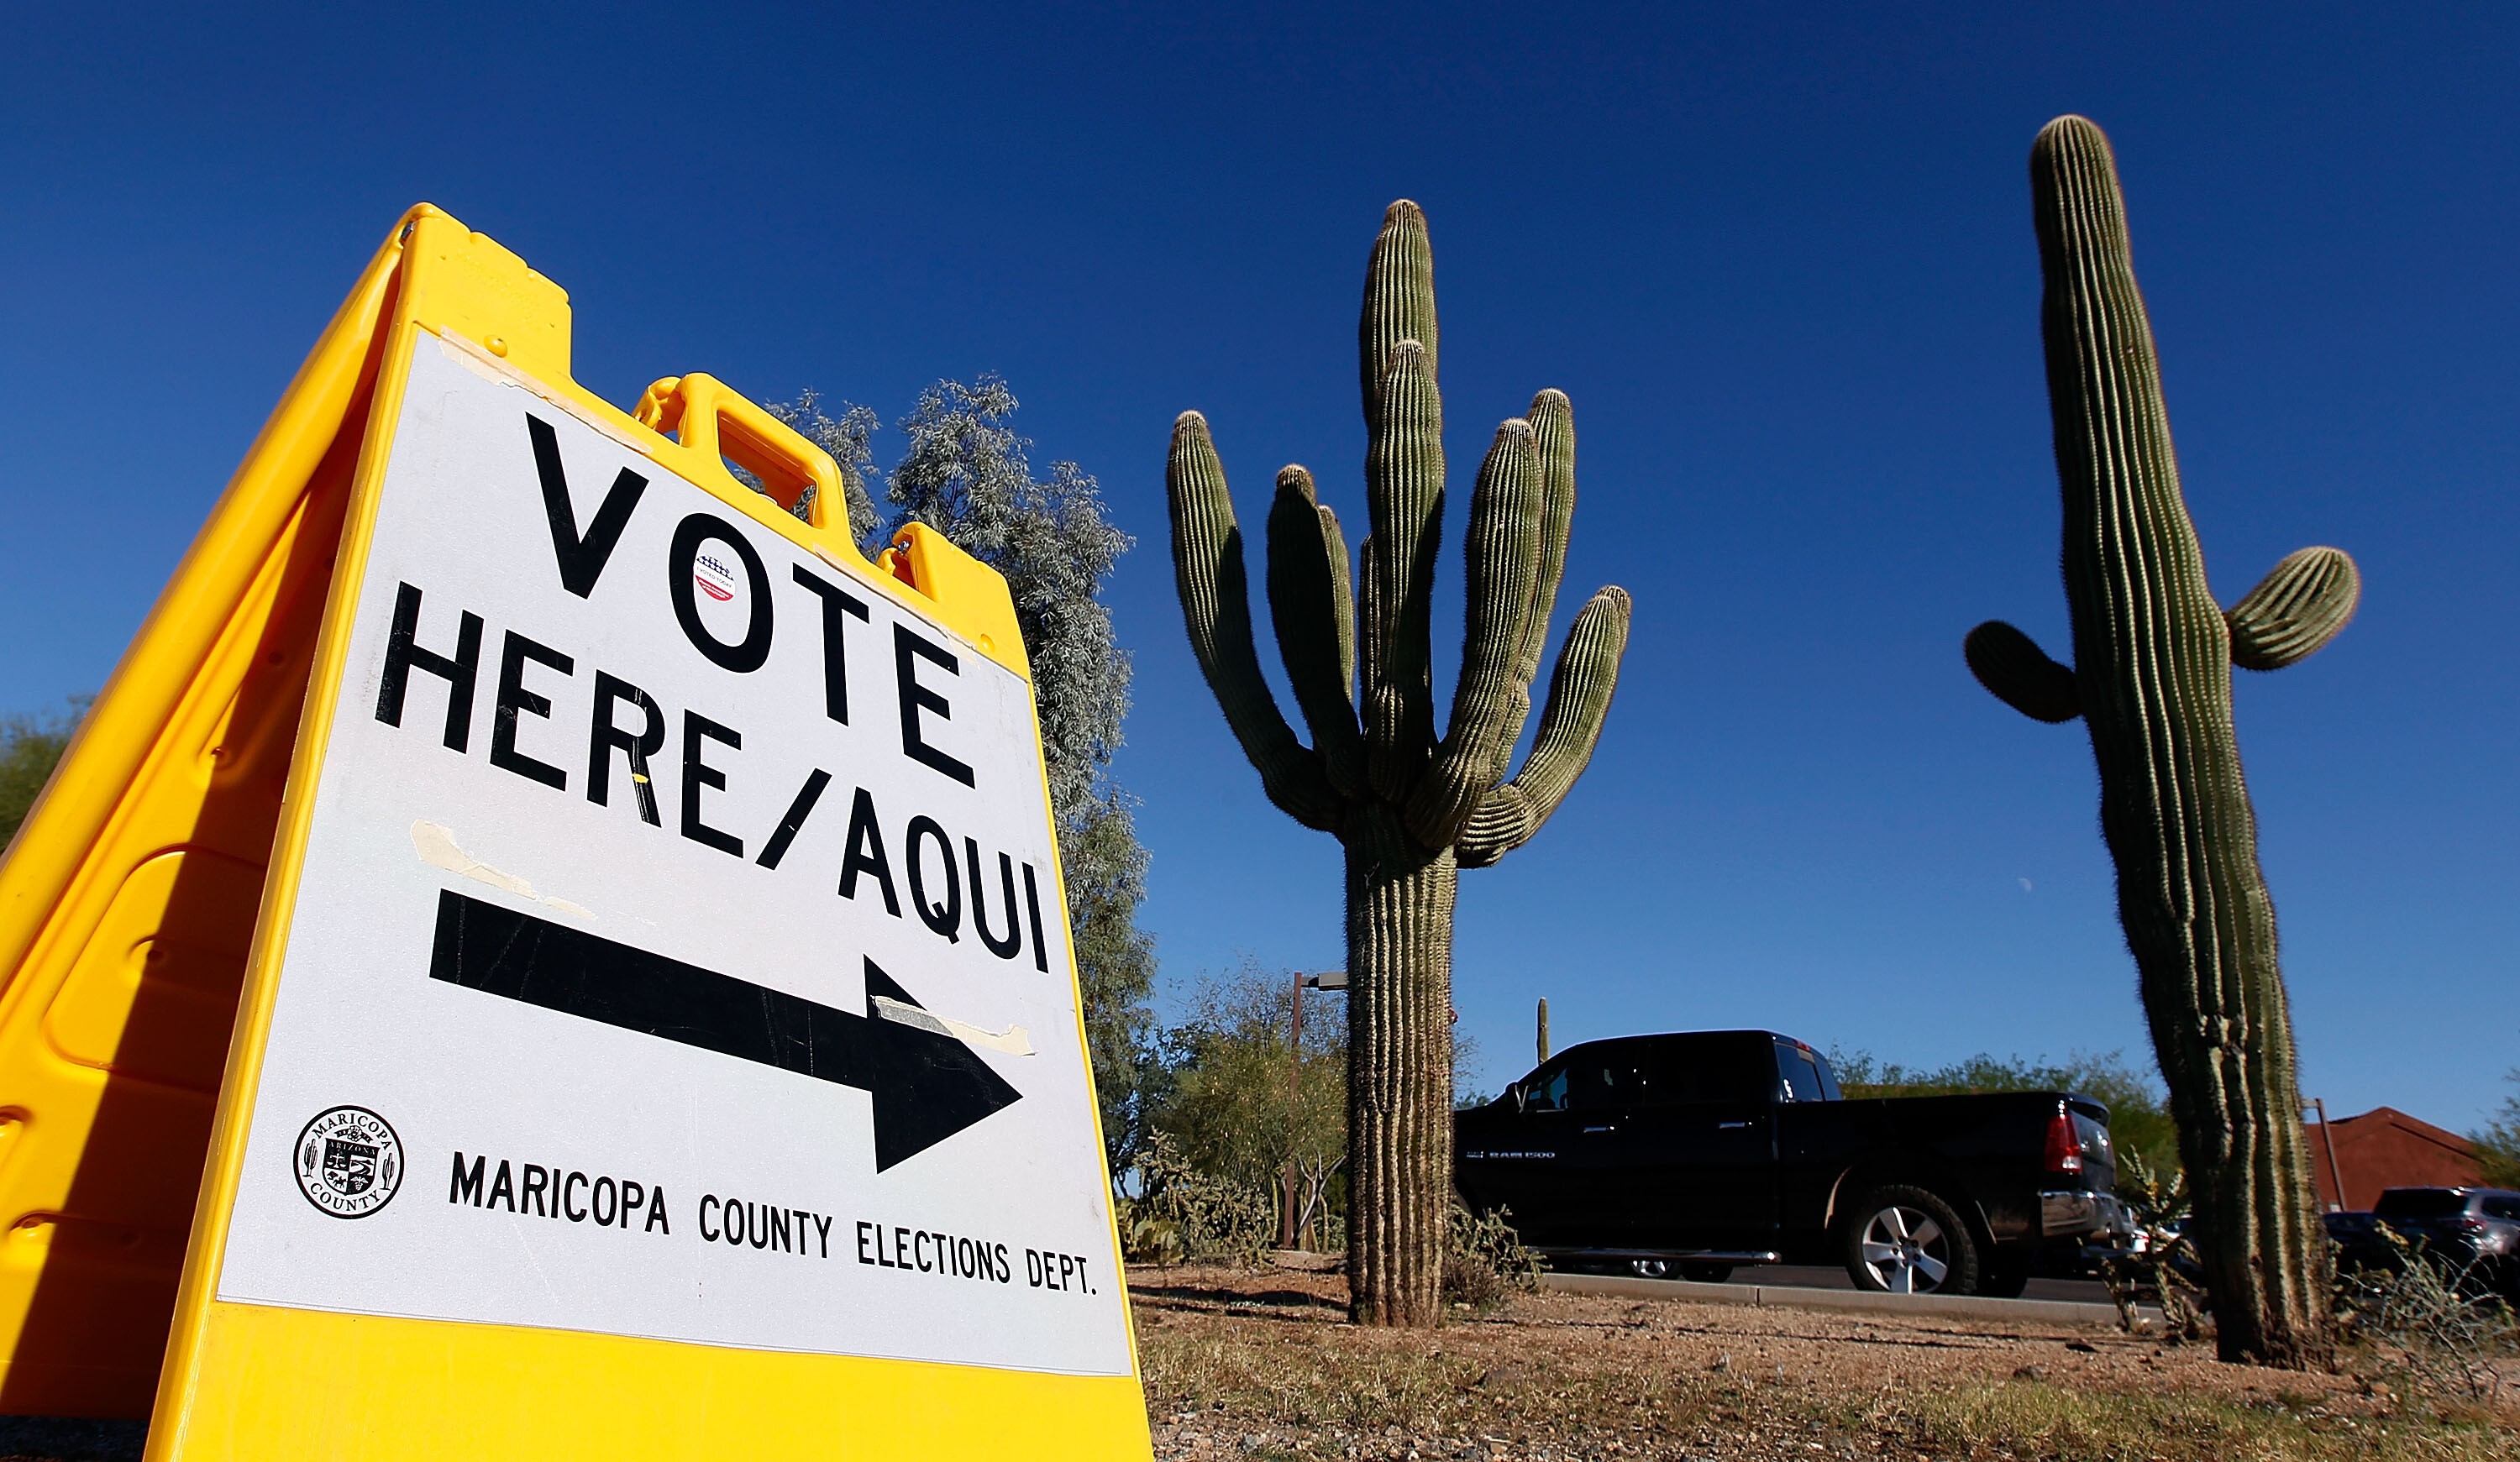 Democratic National Committee and Arizona Democrats plan to mount legal action to stop state voter purge law